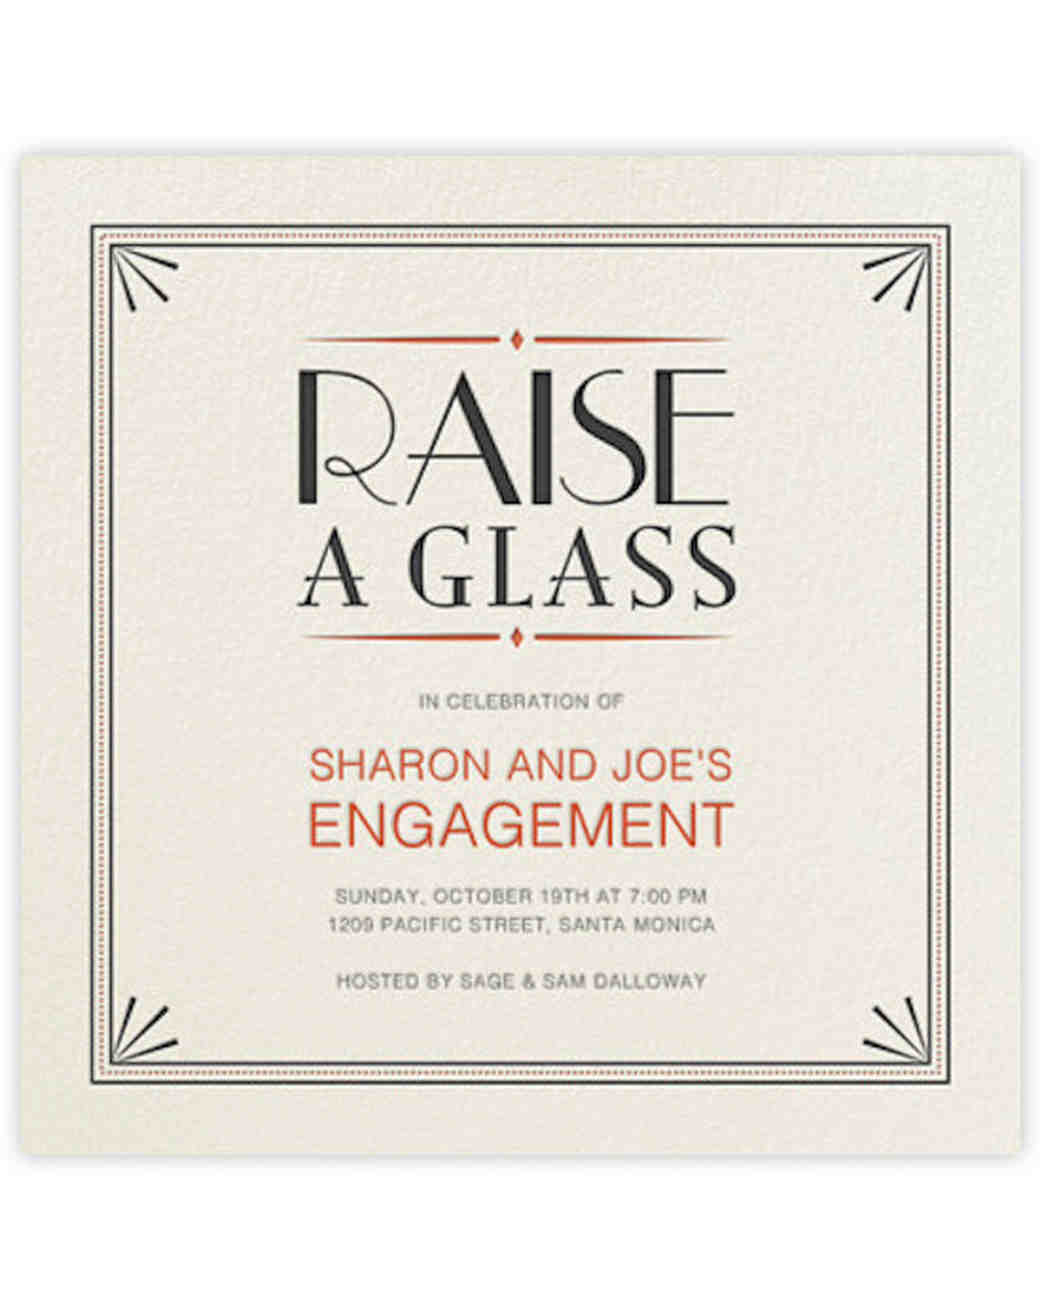 35 Paperless Engagement Party Invites | Martha Stewart Weddings